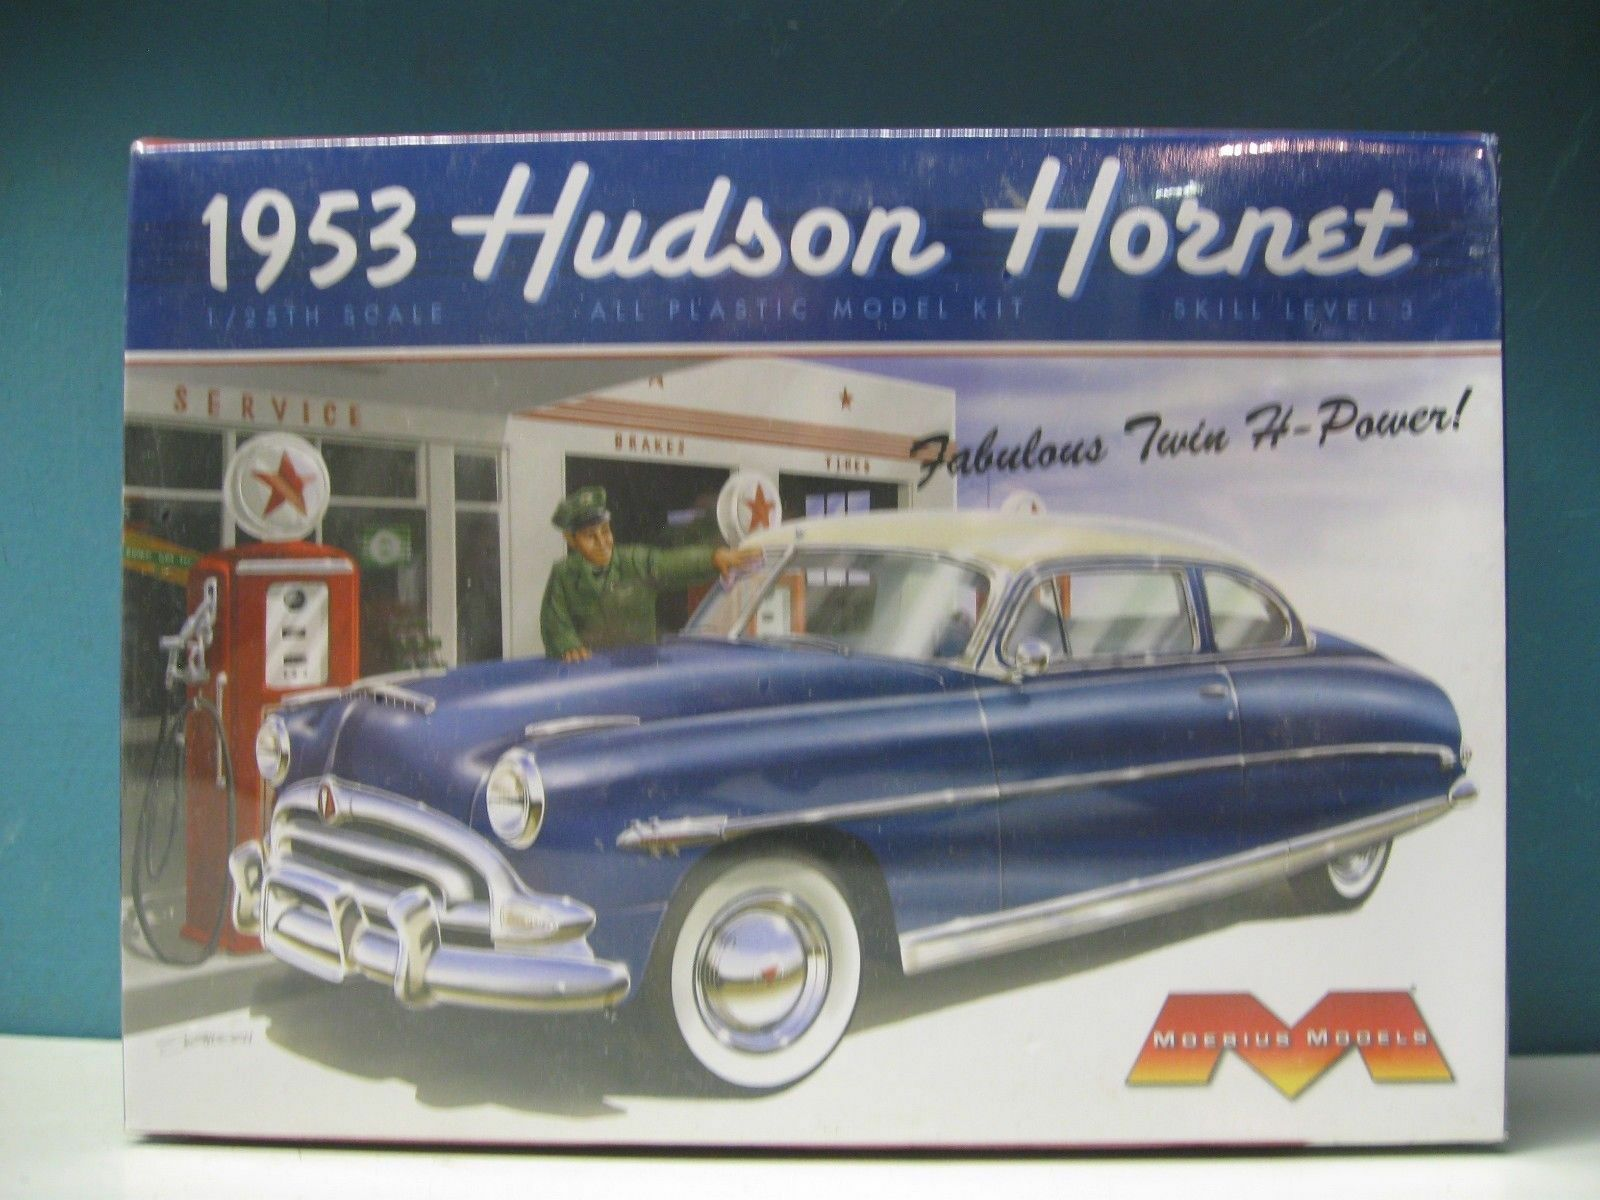 2011 discontinued moebius  25 25 25 1953 Hudson Hornet model kit new in the box 87e09a